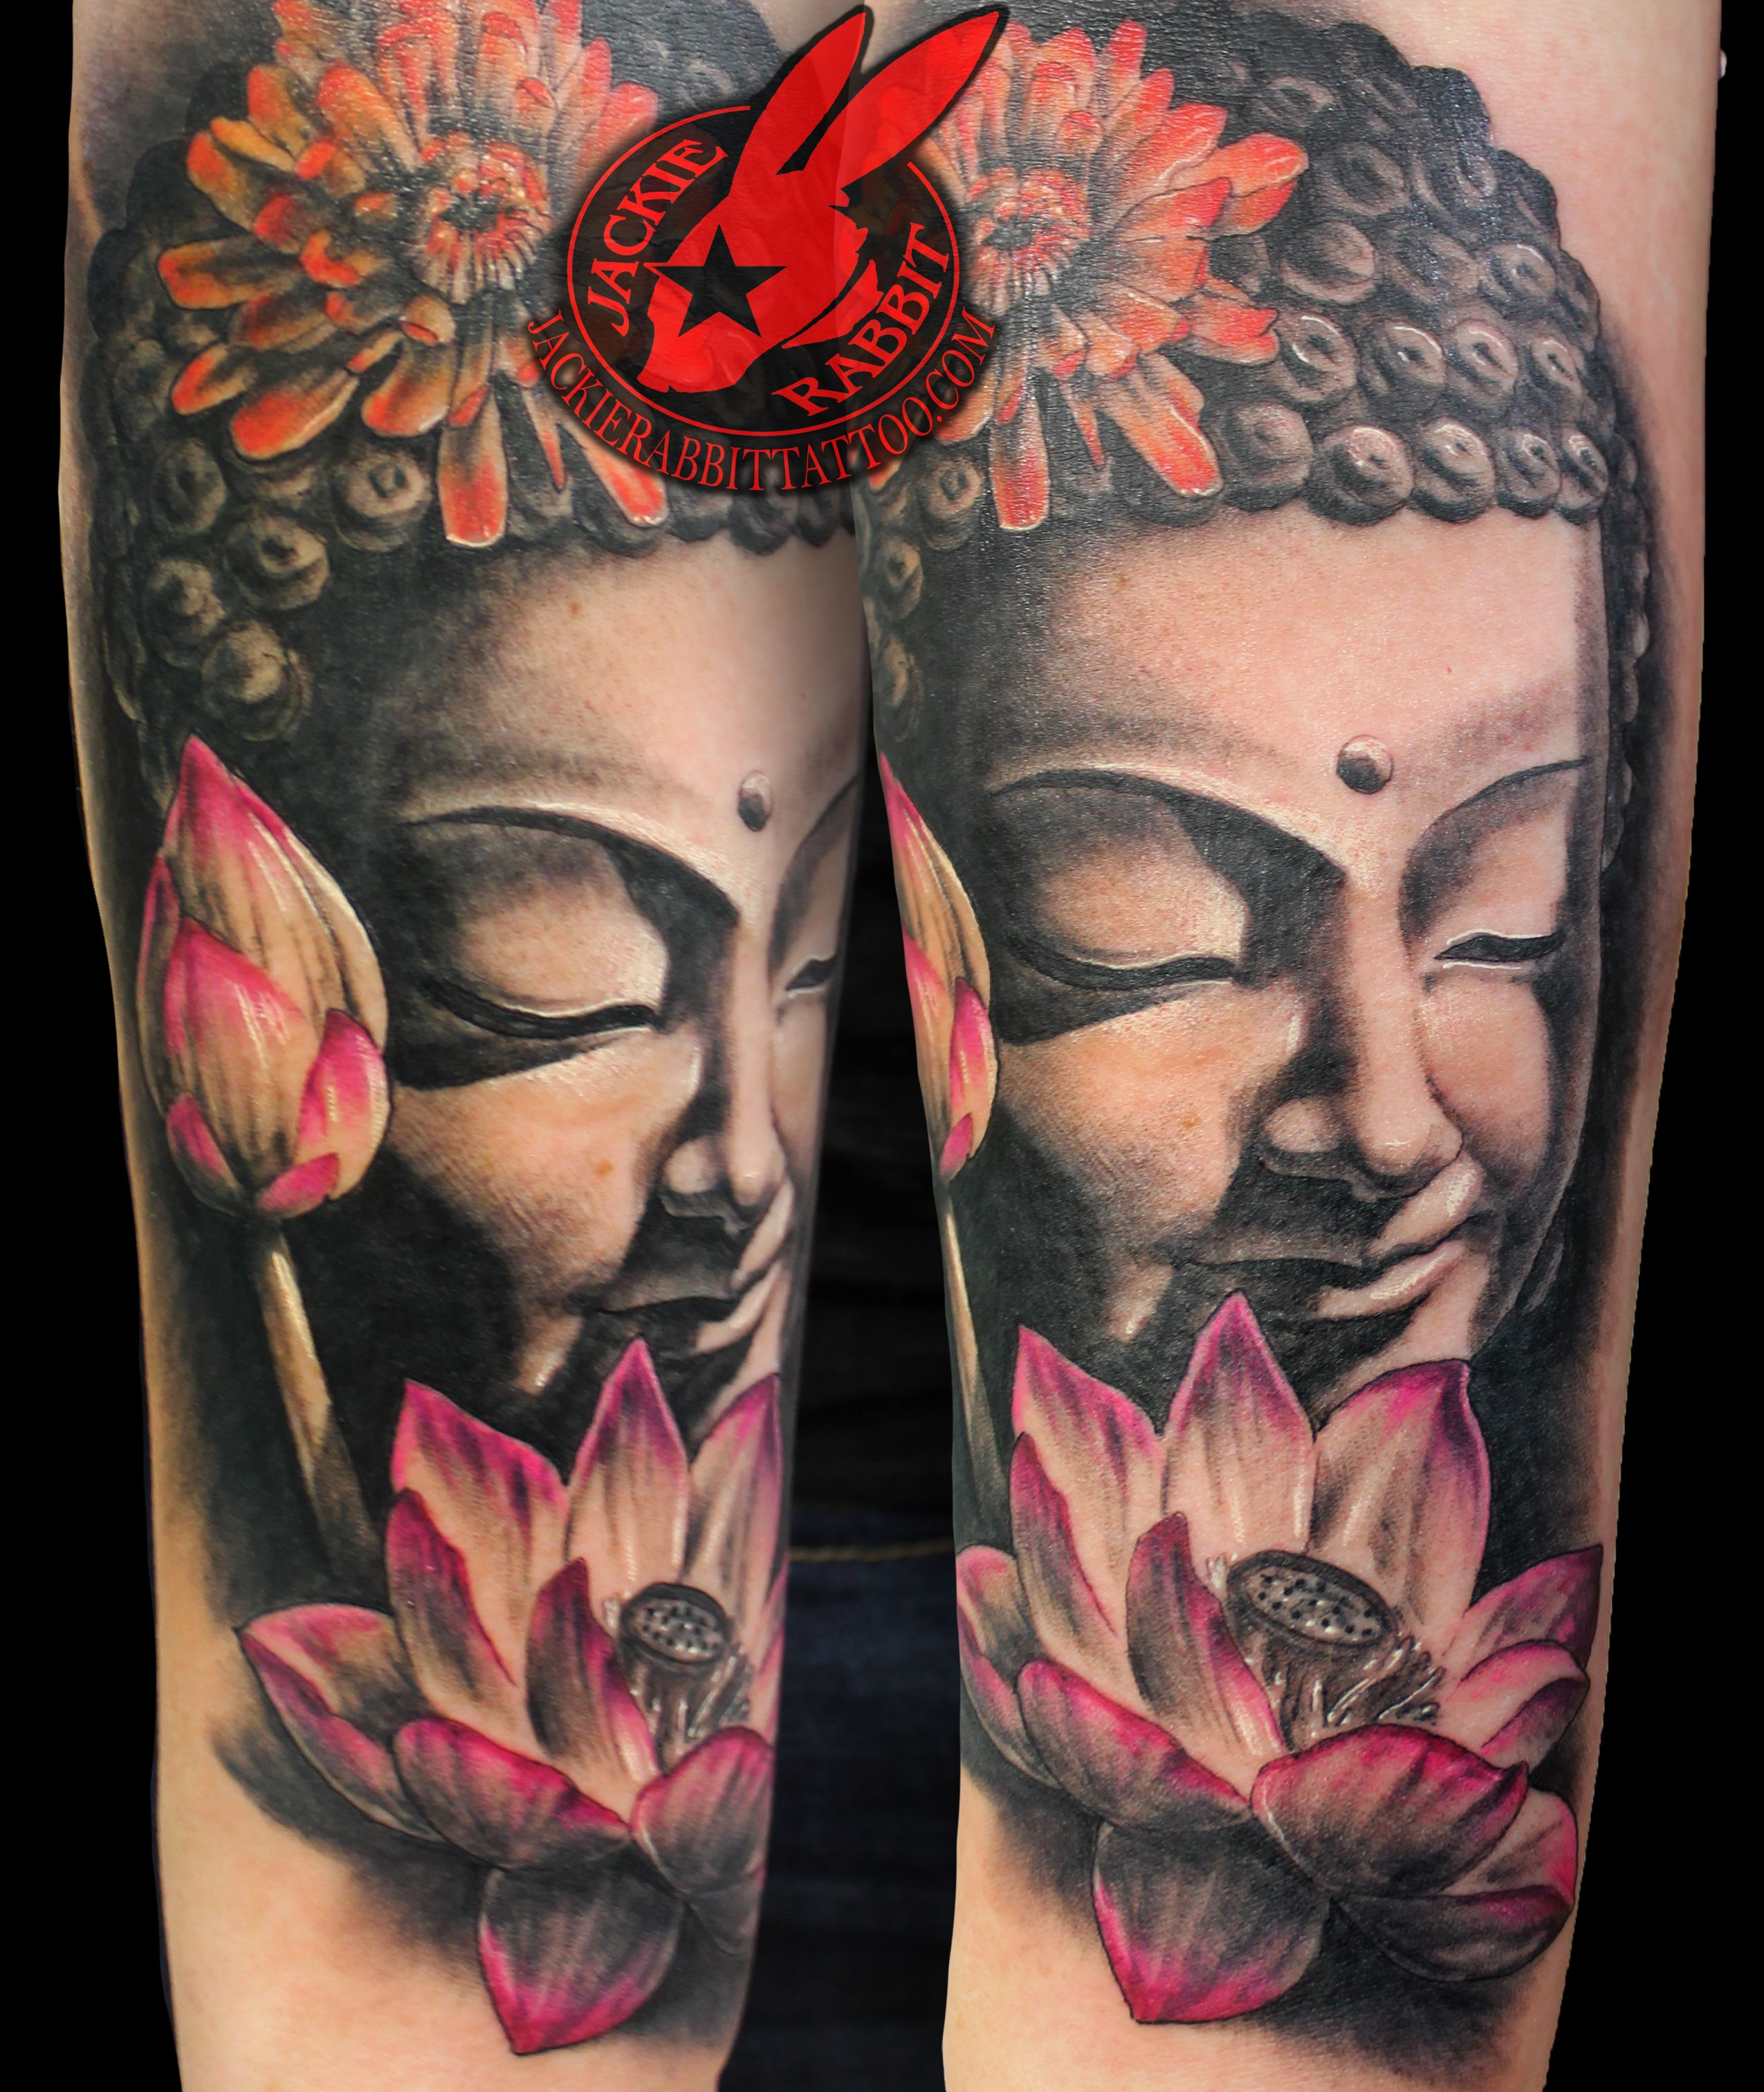 buddha lotus pink statue face portrait 3d realistic tattoo by jackie rabbit custom tattoo by. Black Bedroom Furniture Sets. Home Design Ideas